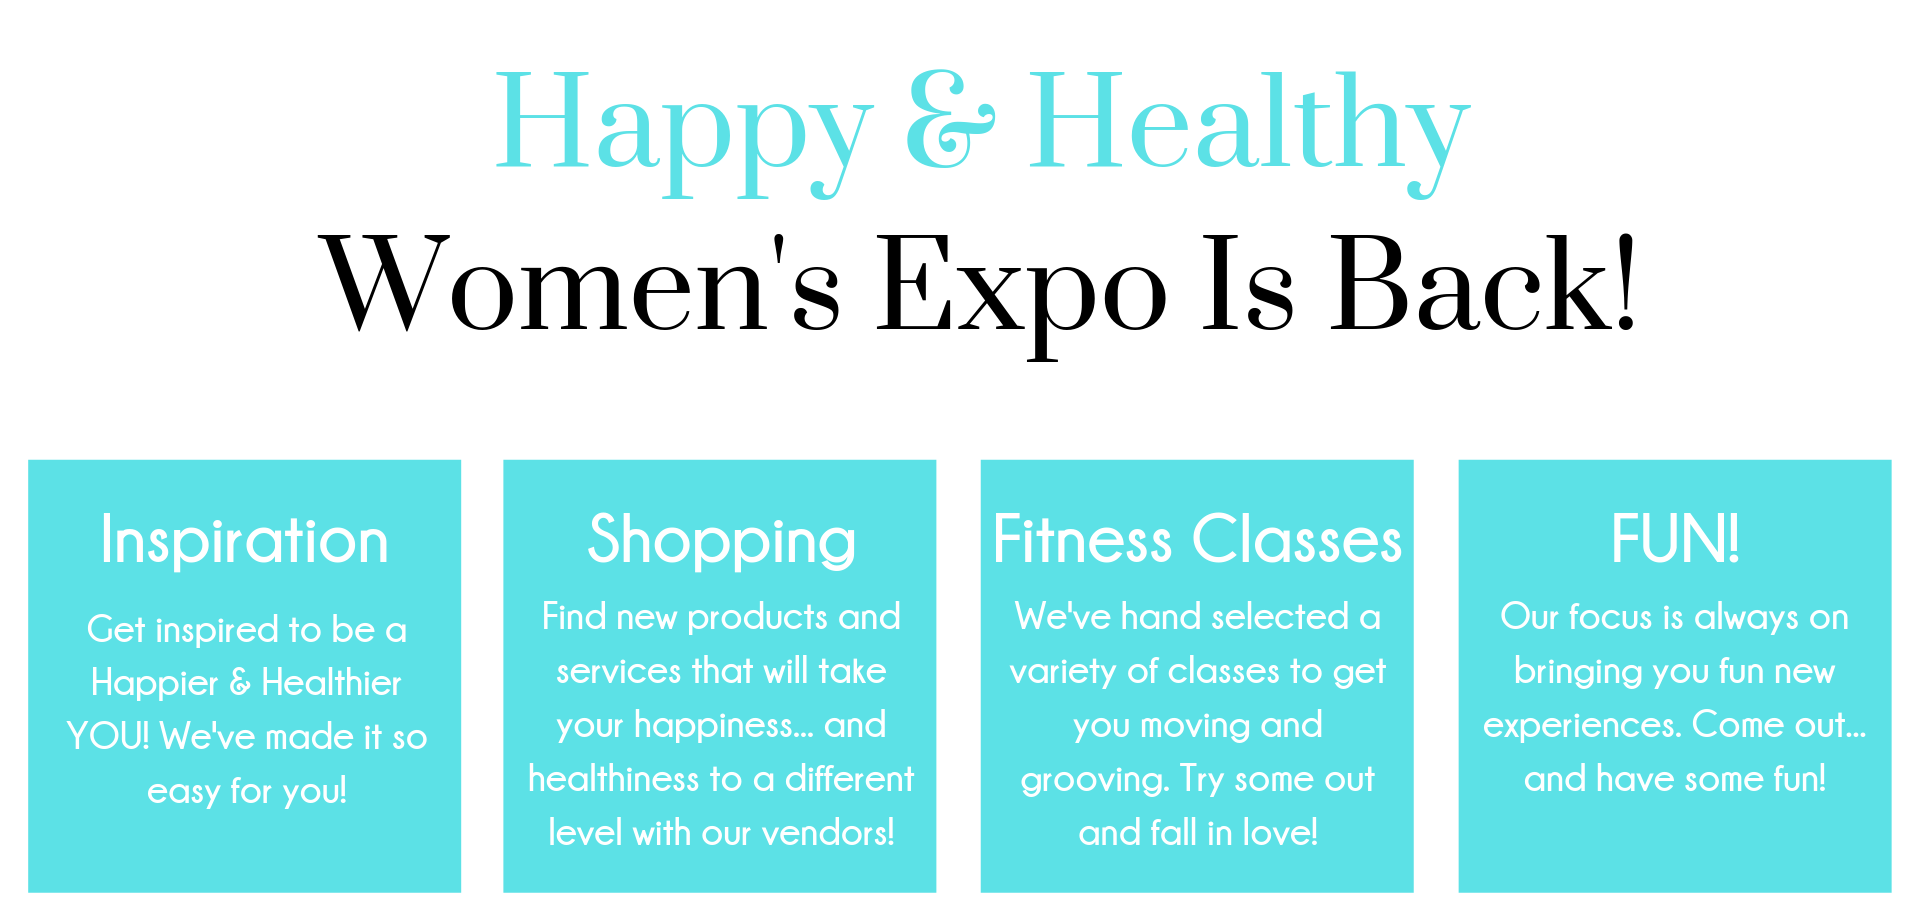 3rd Annual Happy and Healthy Expo!